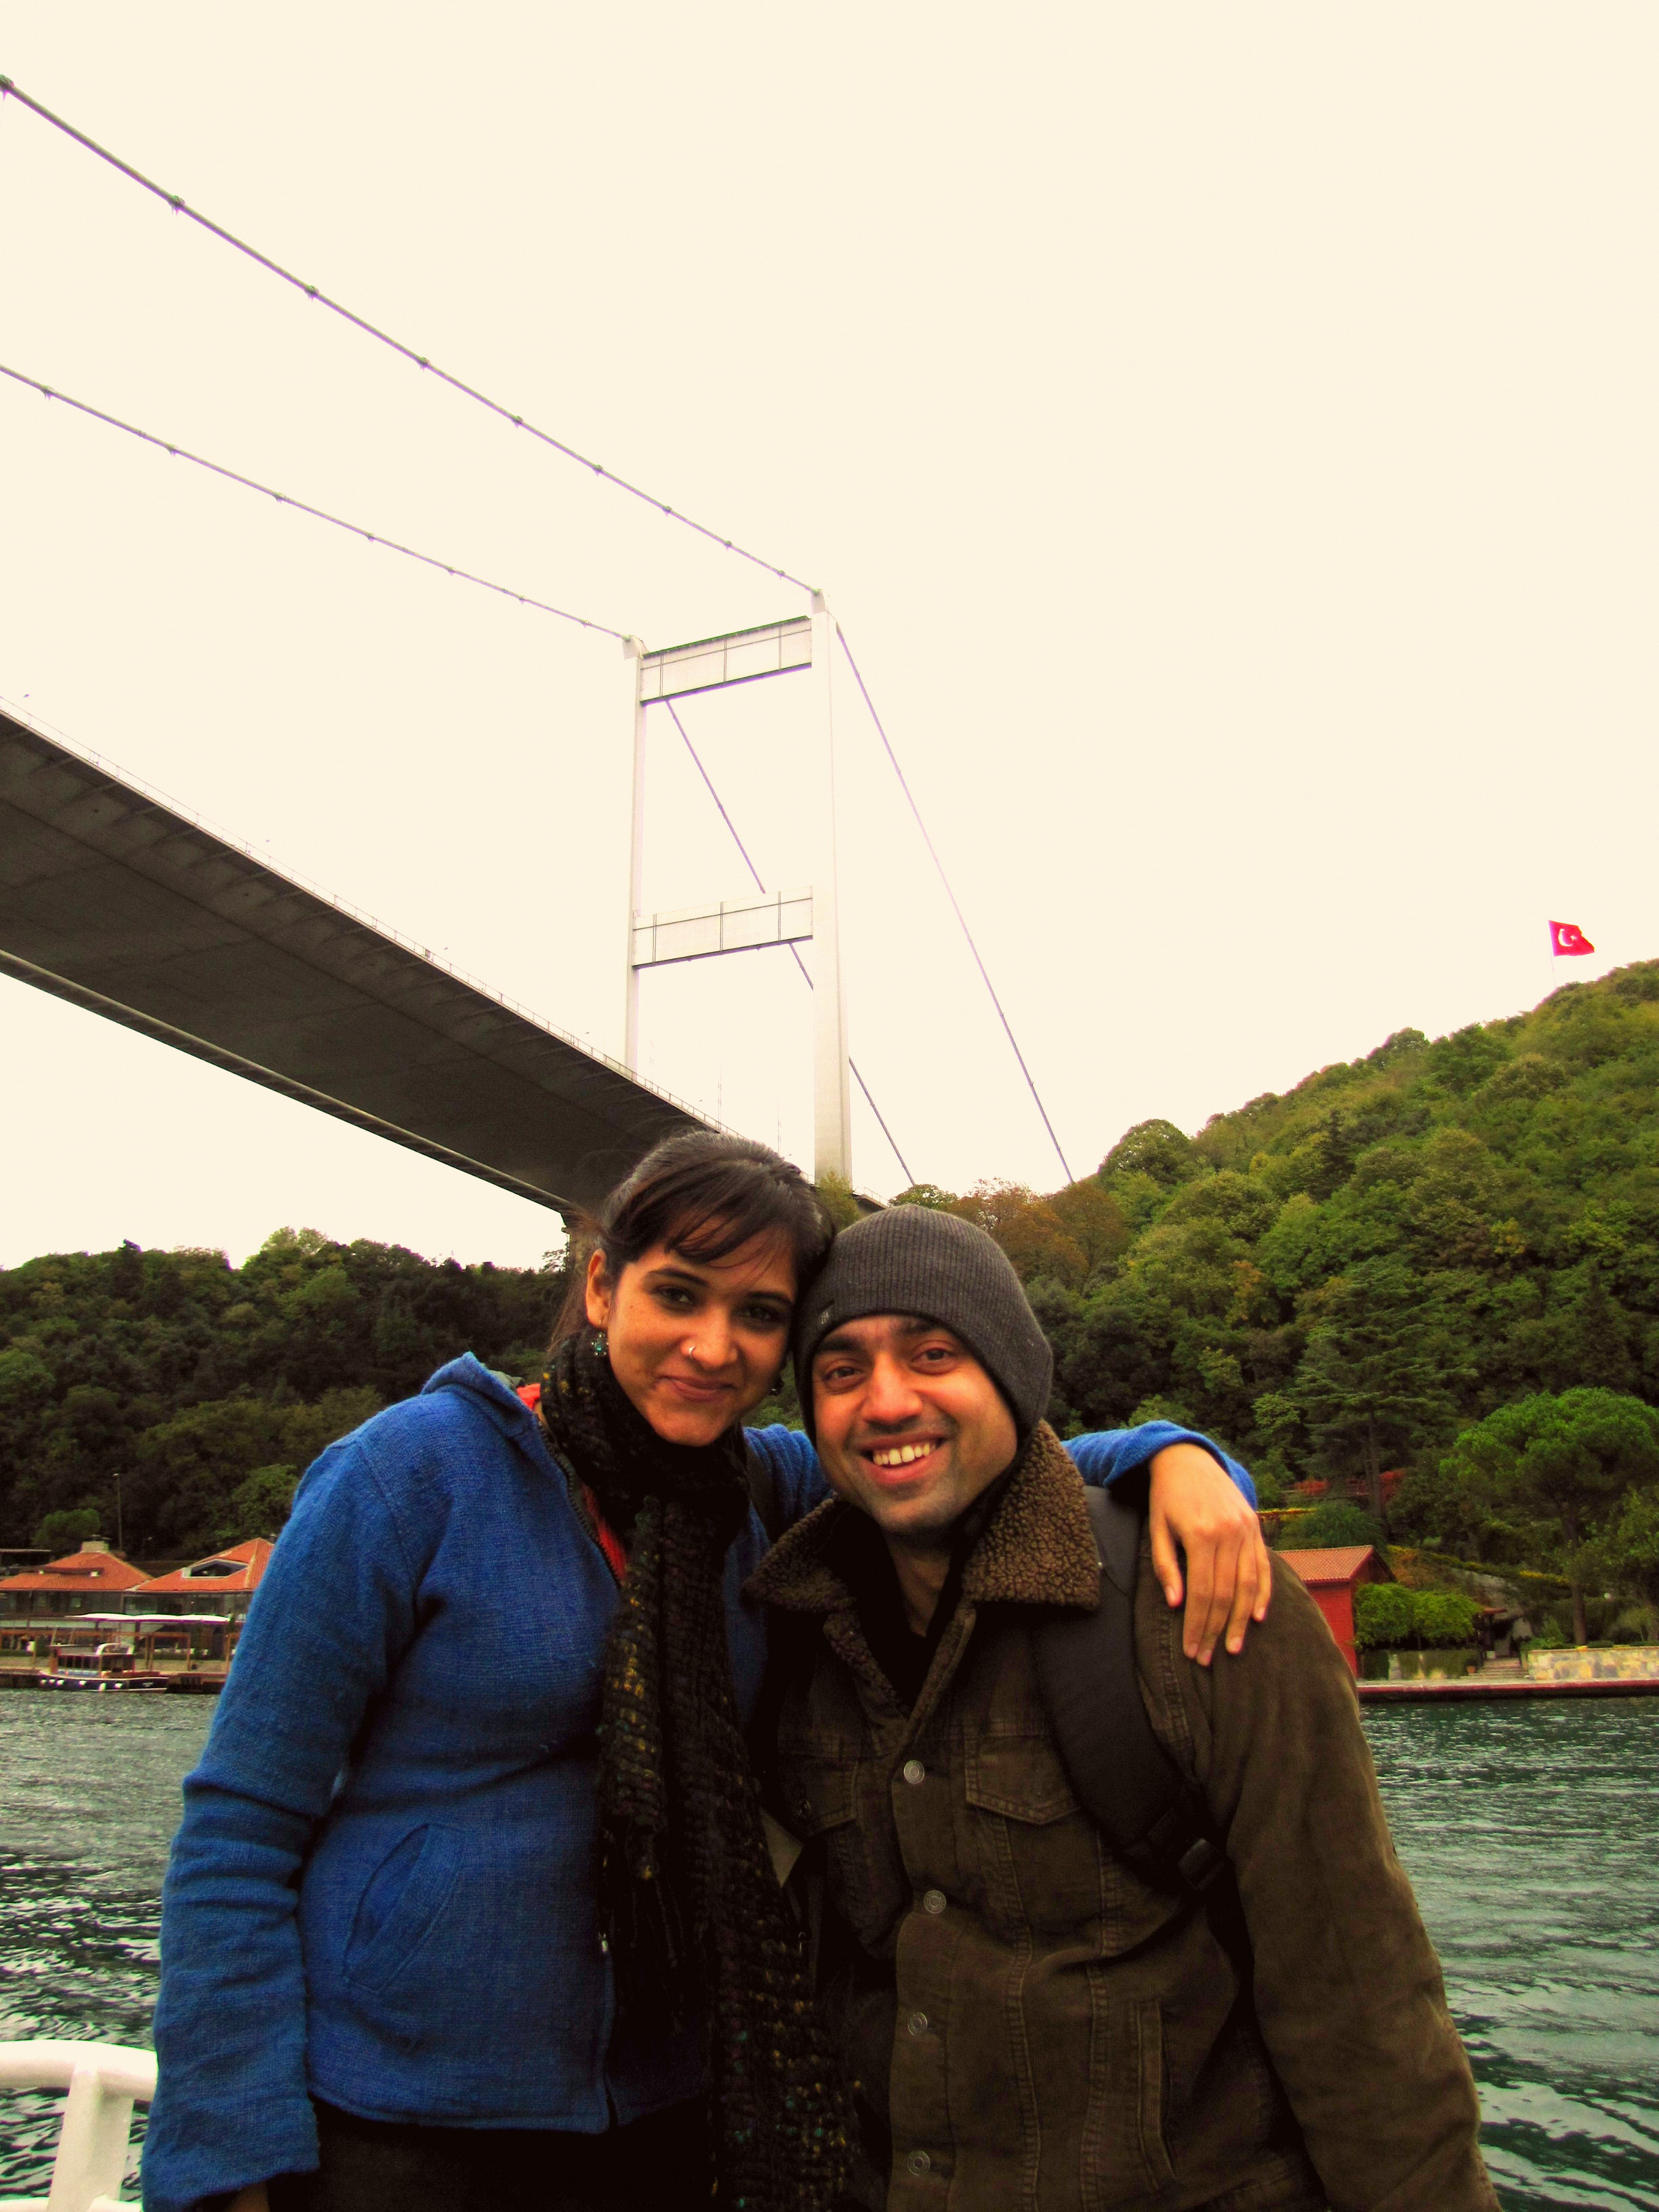 On the Traditional Steamboat through the Bosphorus